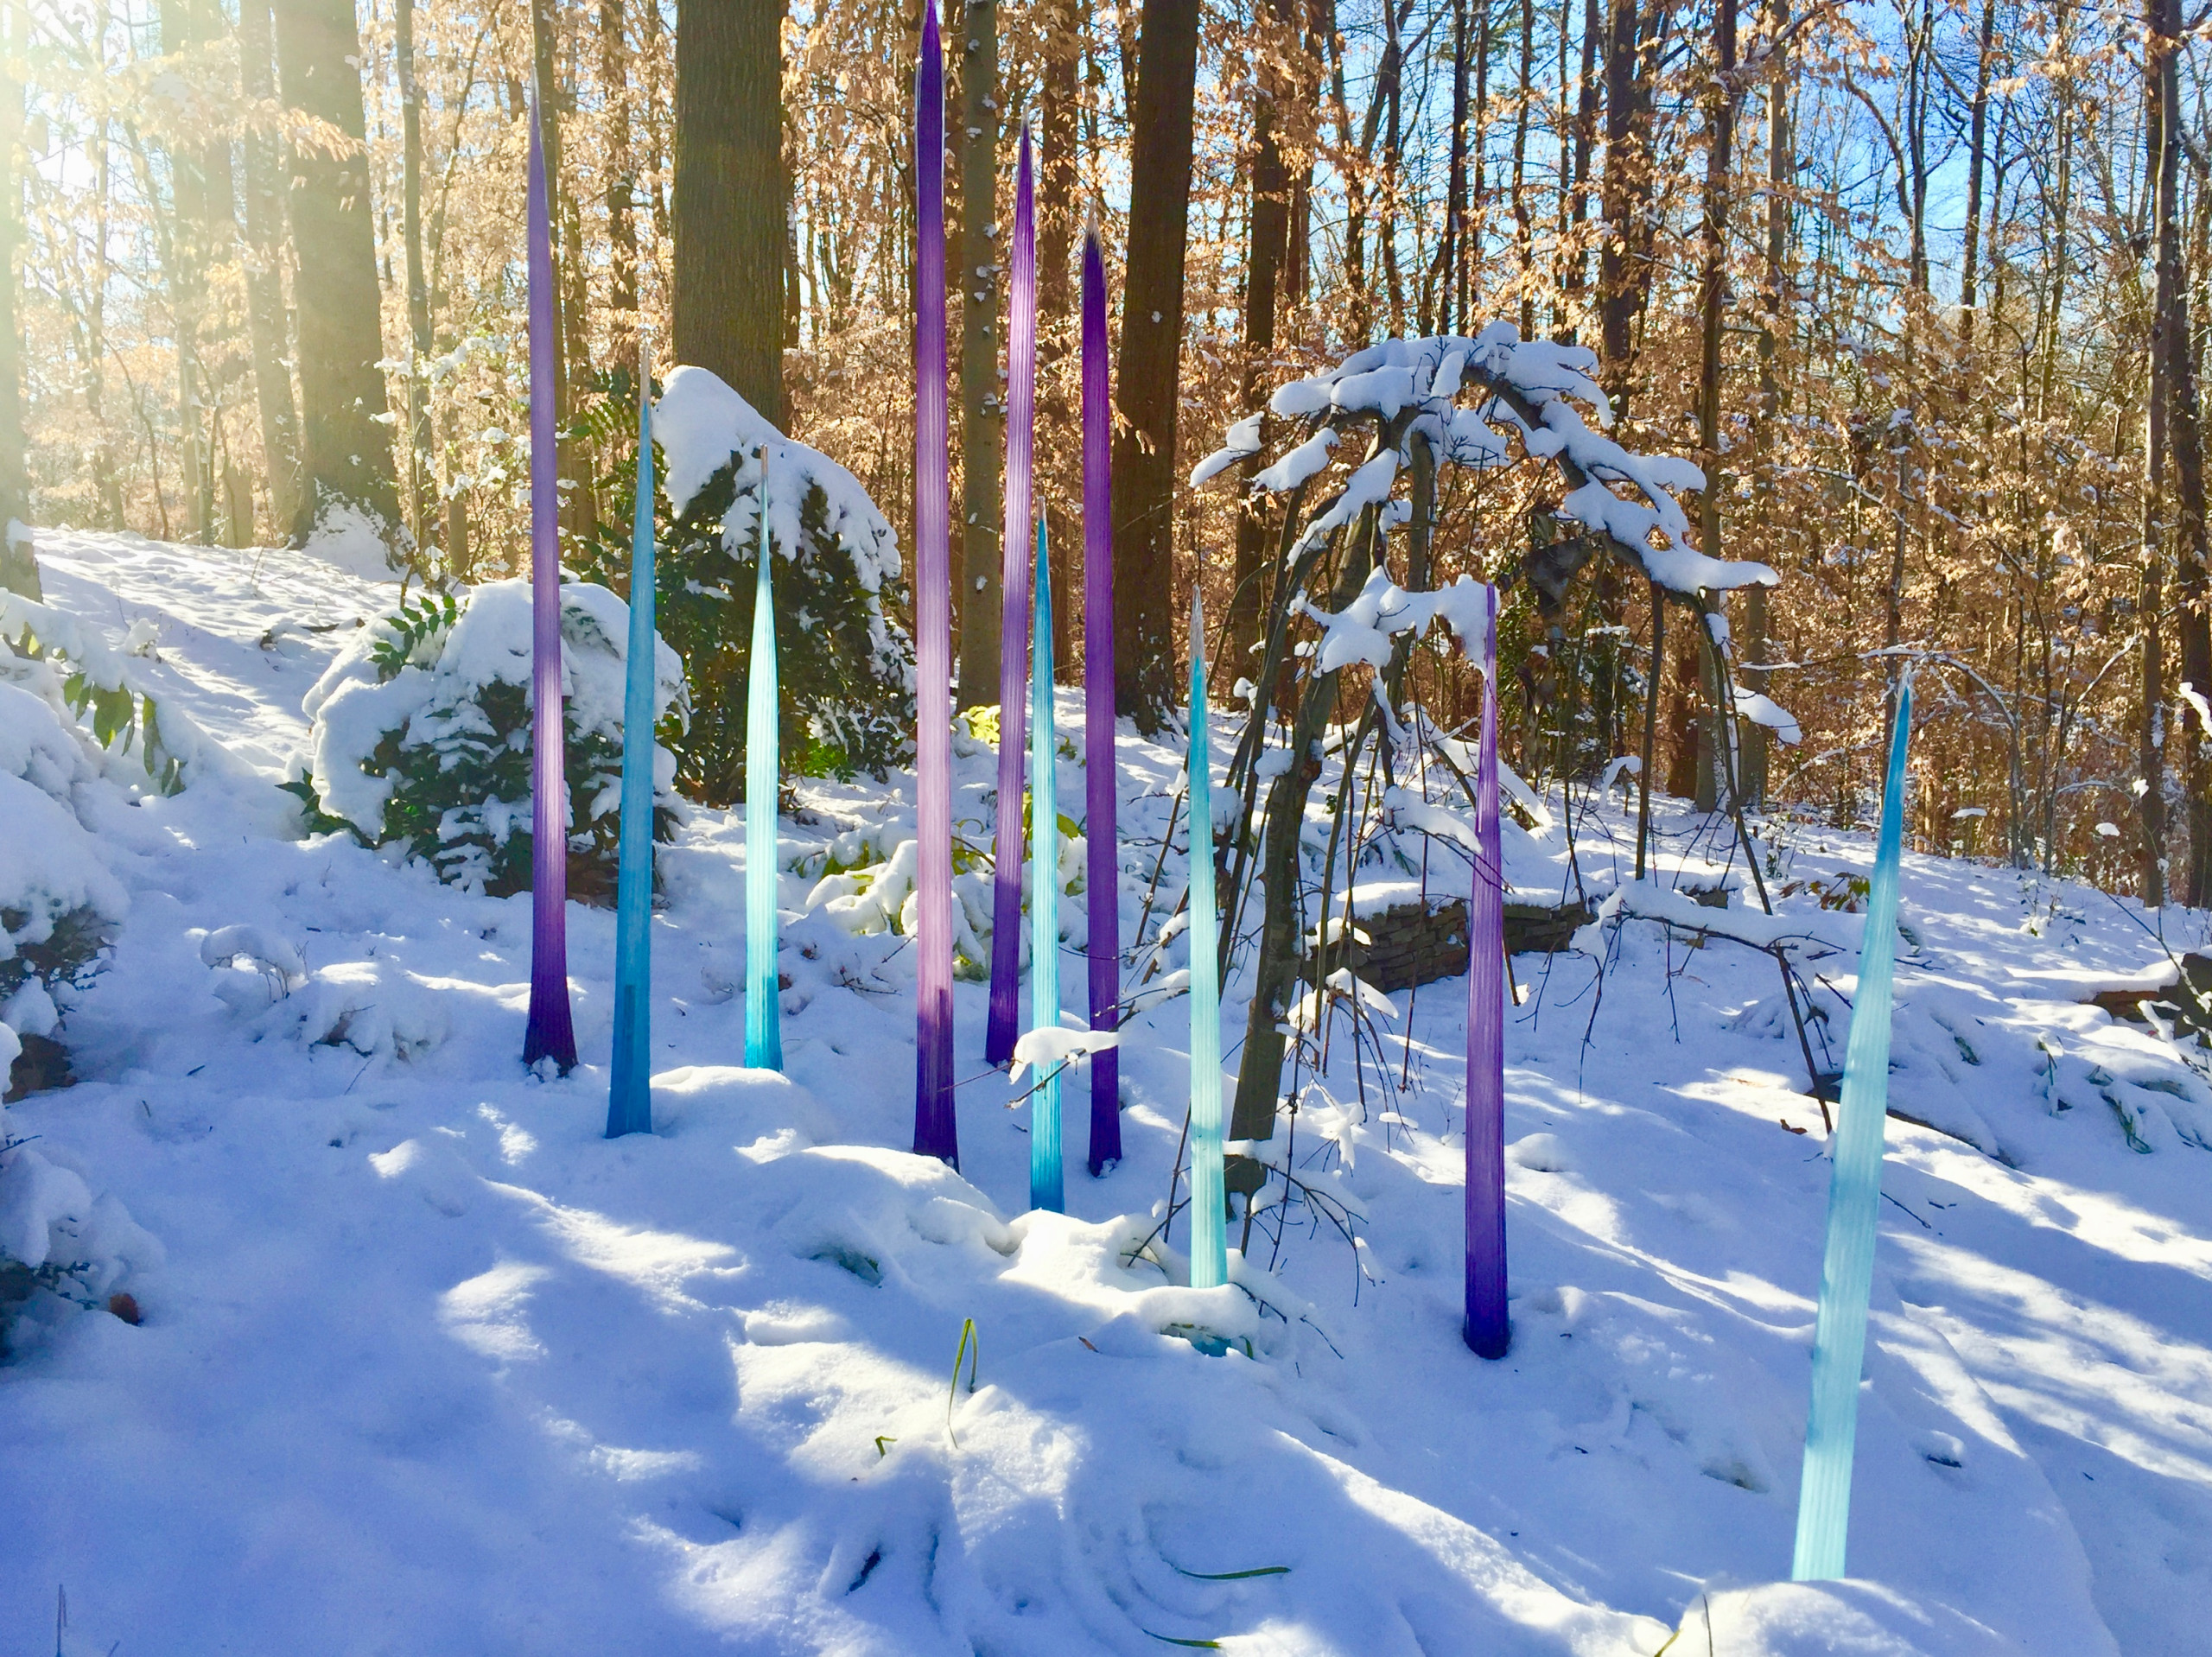 Glass spears in the snow.